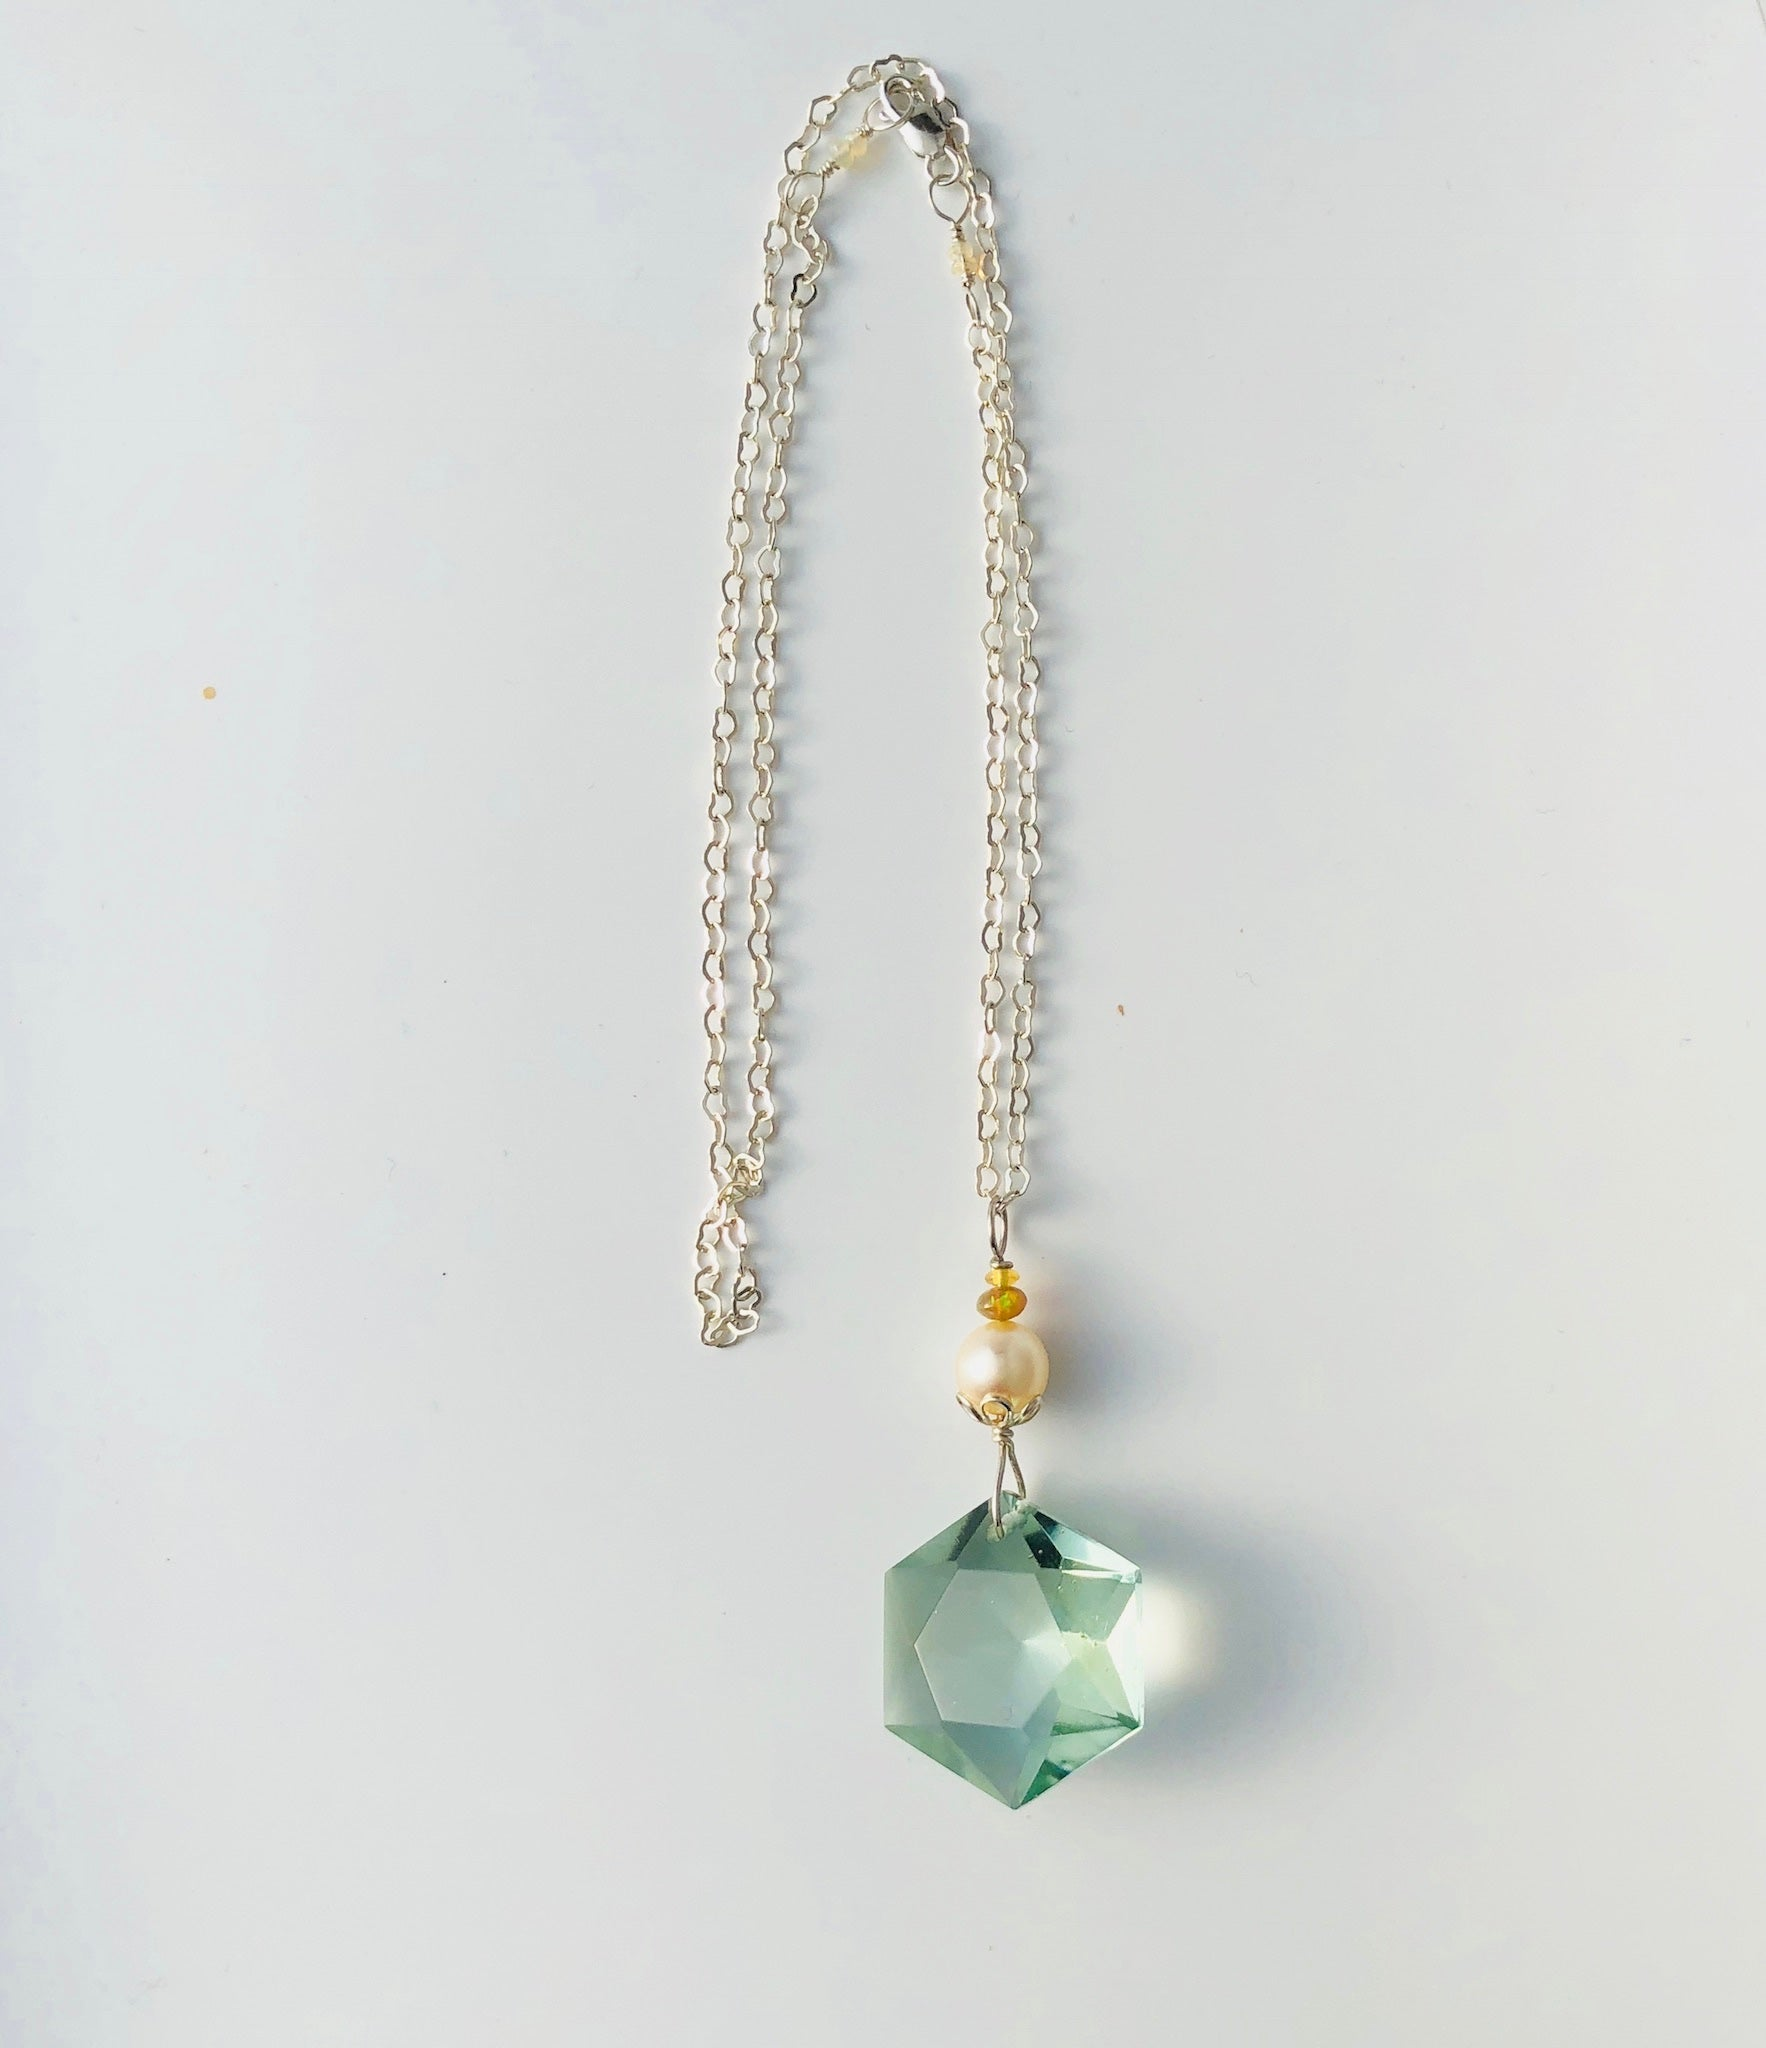 Ollie Blessed & Embellished Crystal Necklace